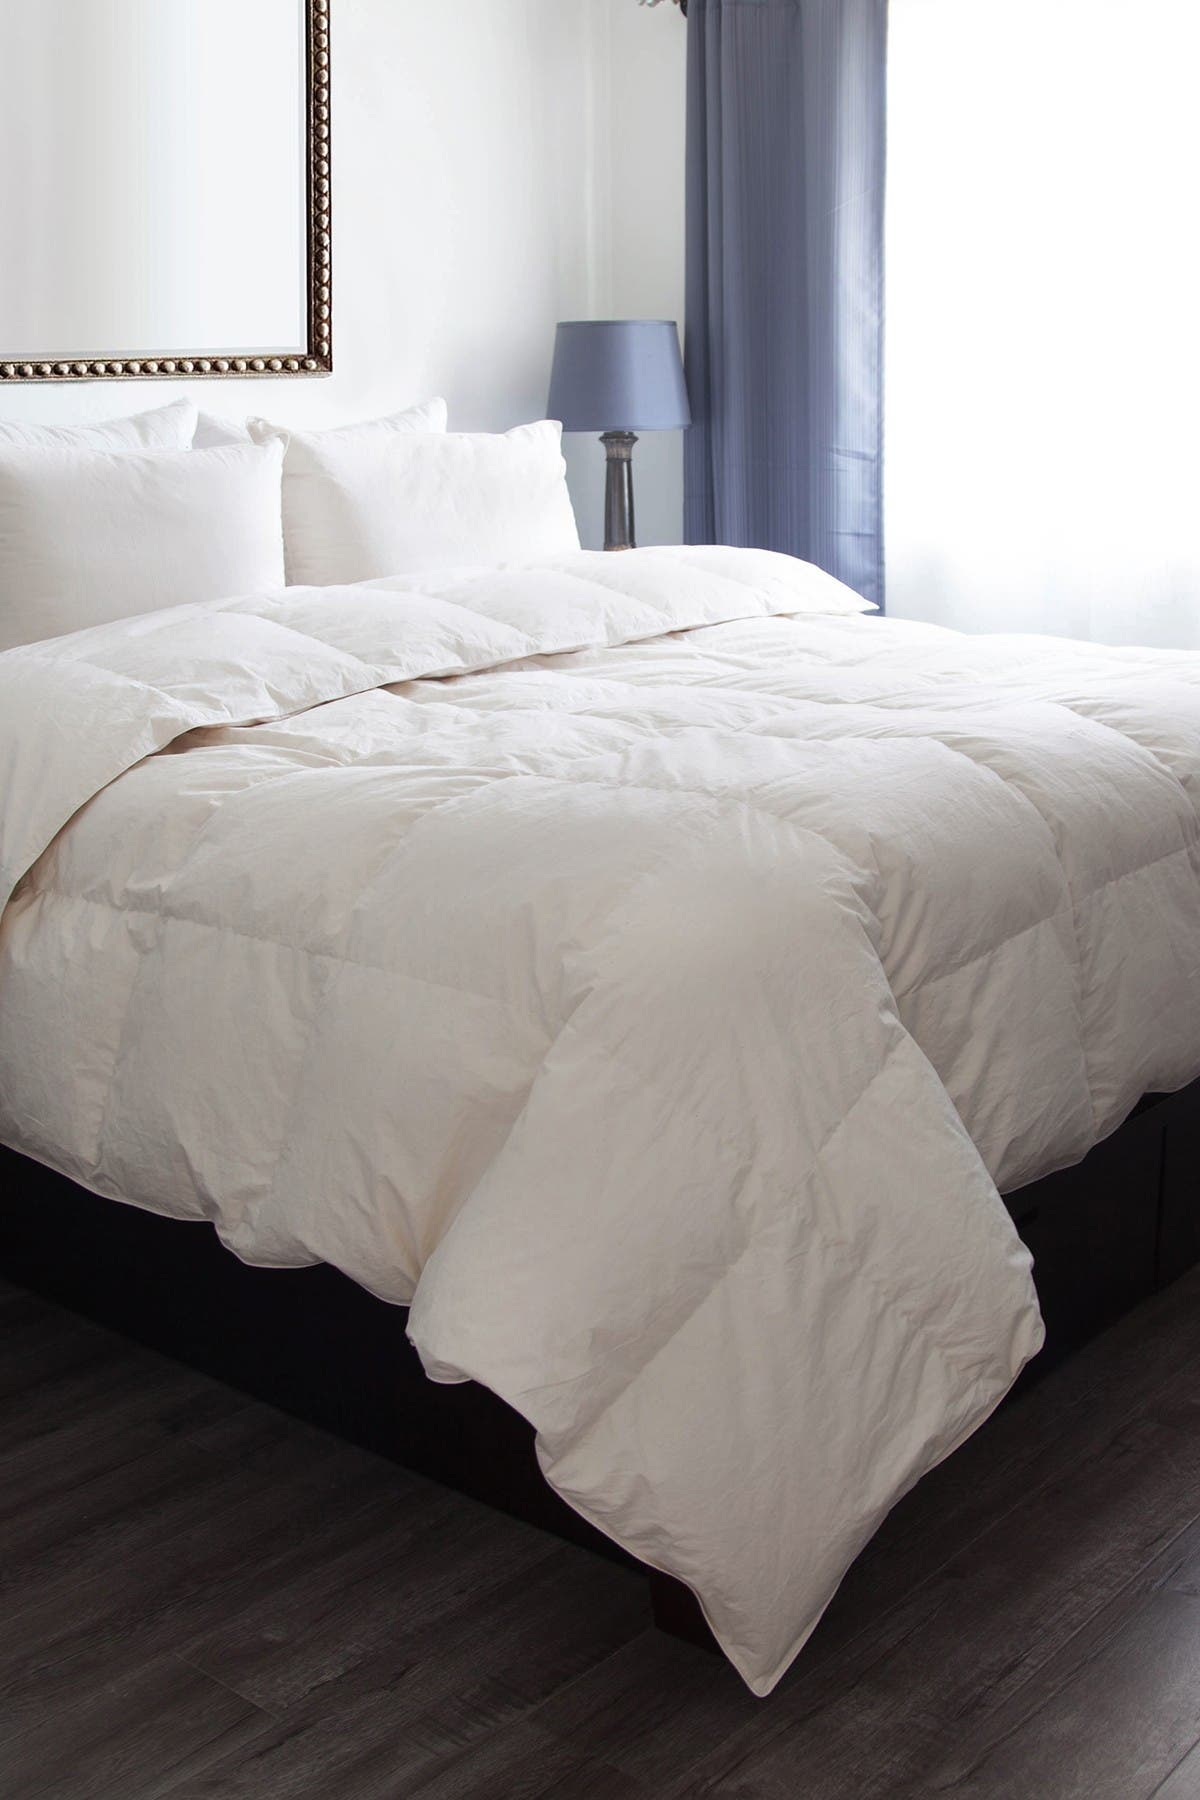 Image of CLIMAREST Weatherproof Vintage Home King All Natural Organic Cotton Down Alternative Comforter